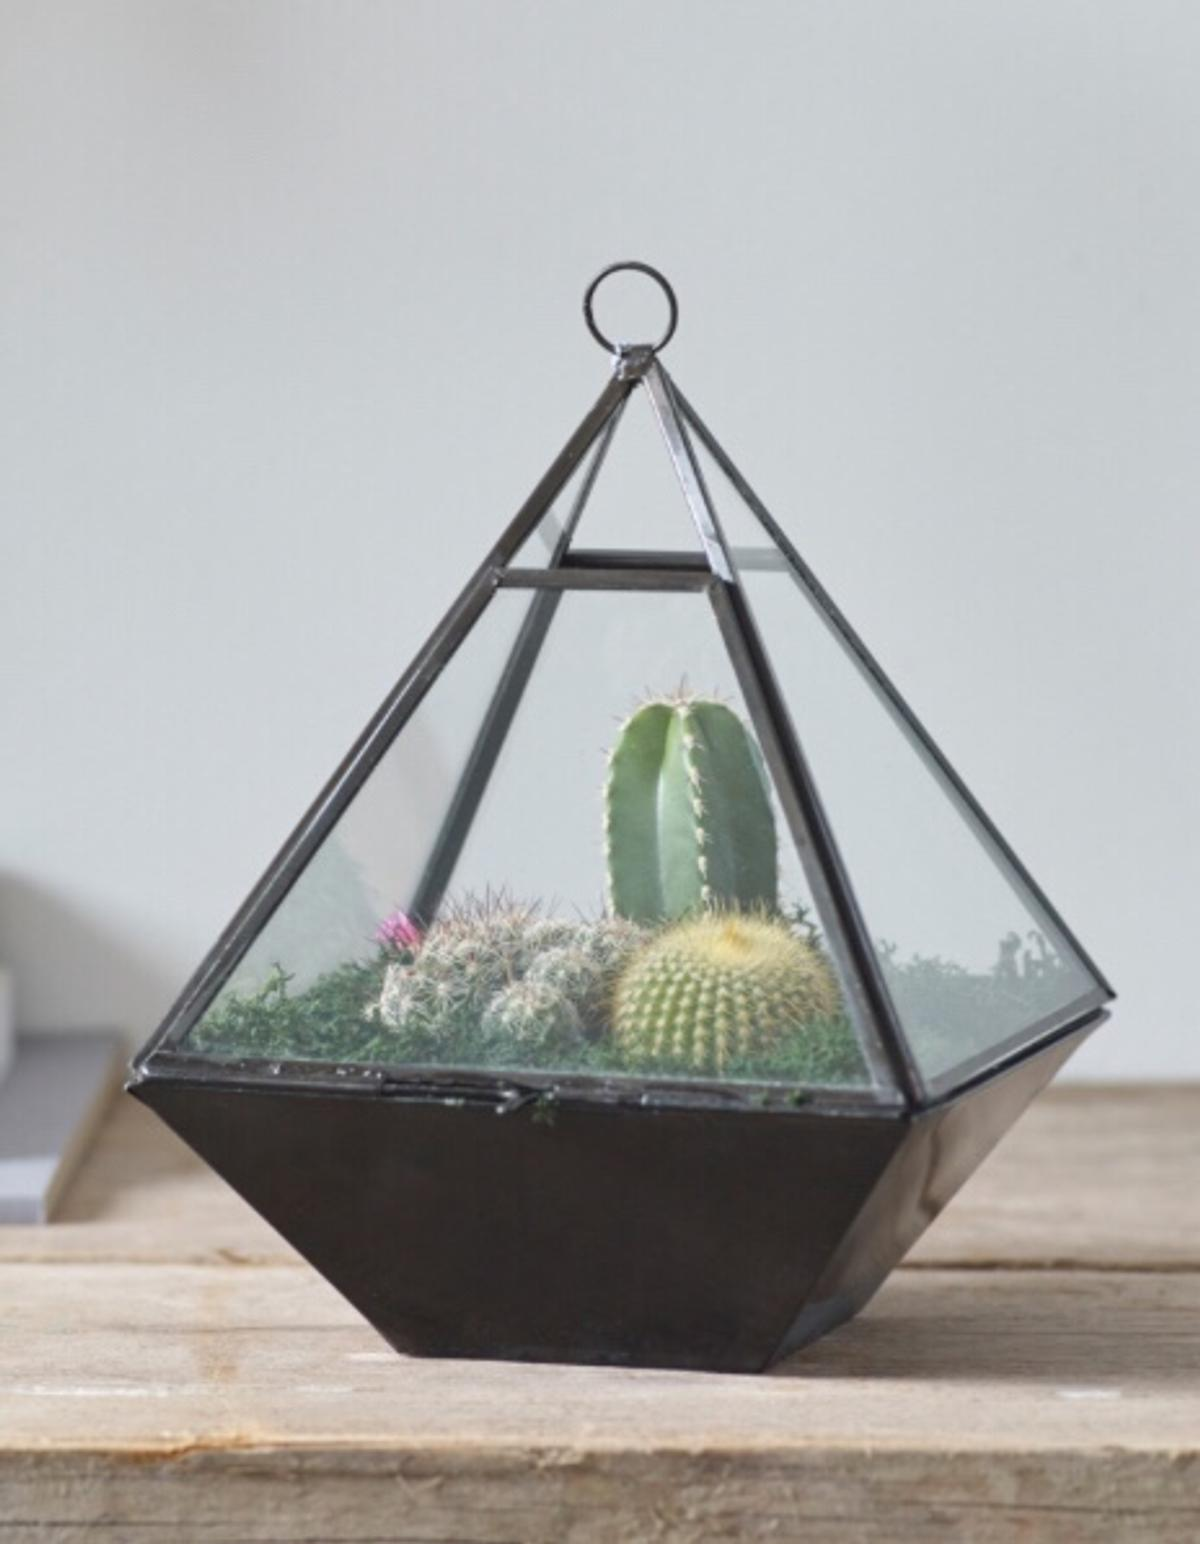 Glass Pyramid Terrarium Home Decoration In B25 Birmingham For 5 00 For Sale Shpock